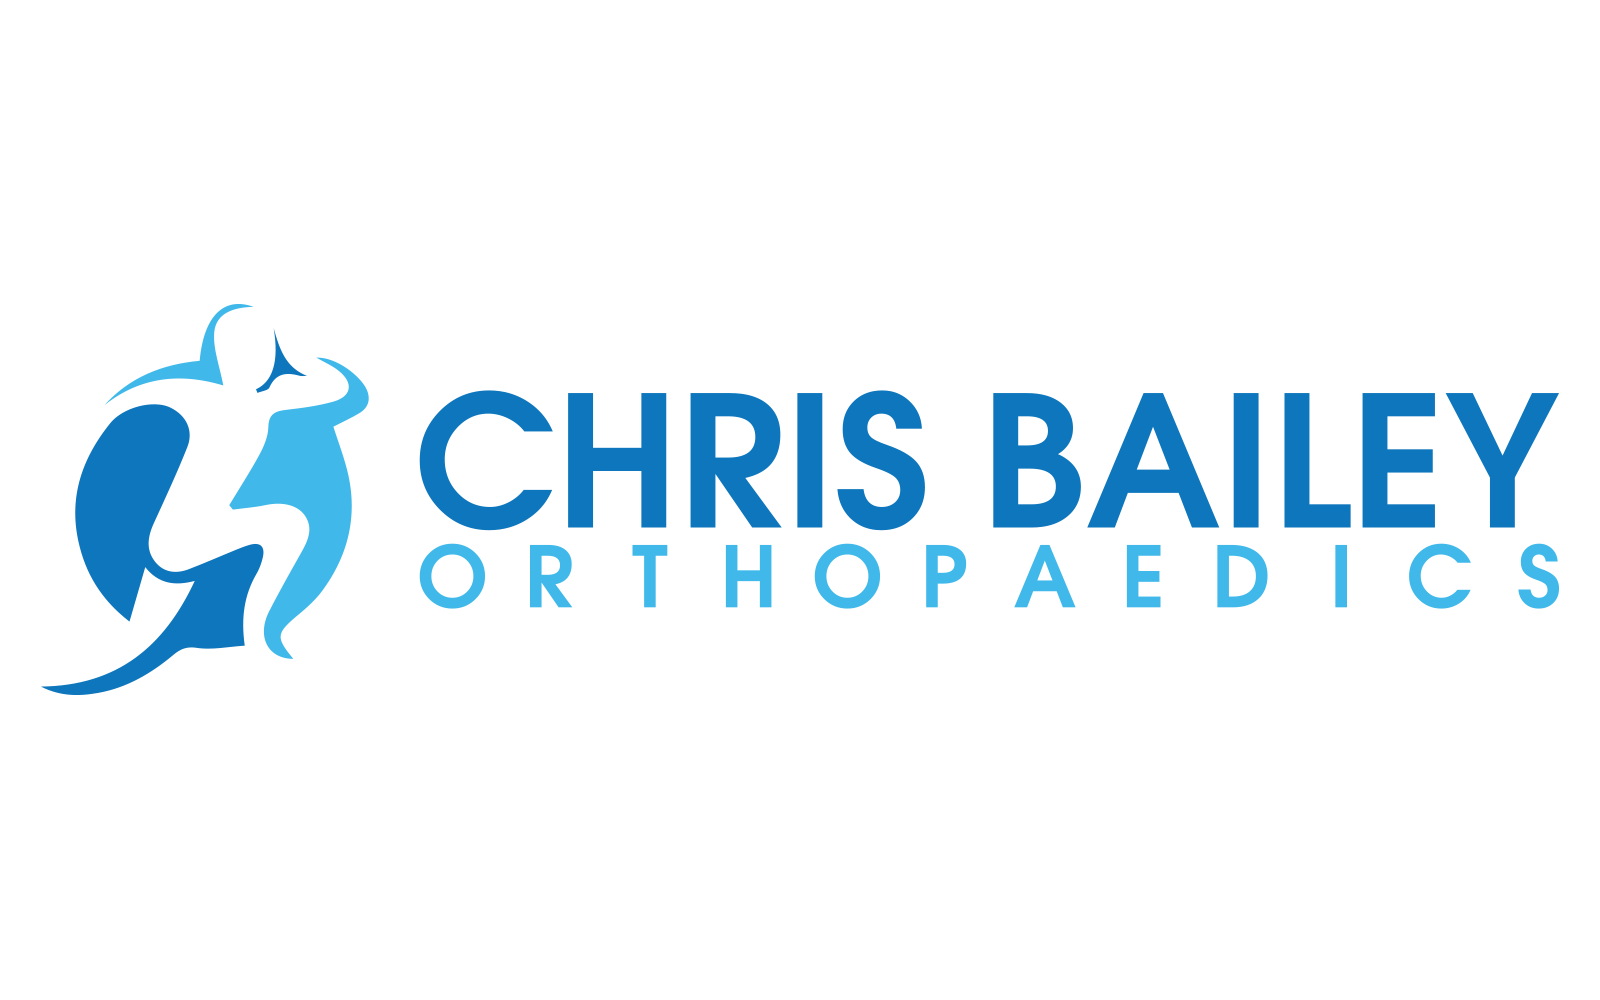 Chris Bailey Orthopaedics